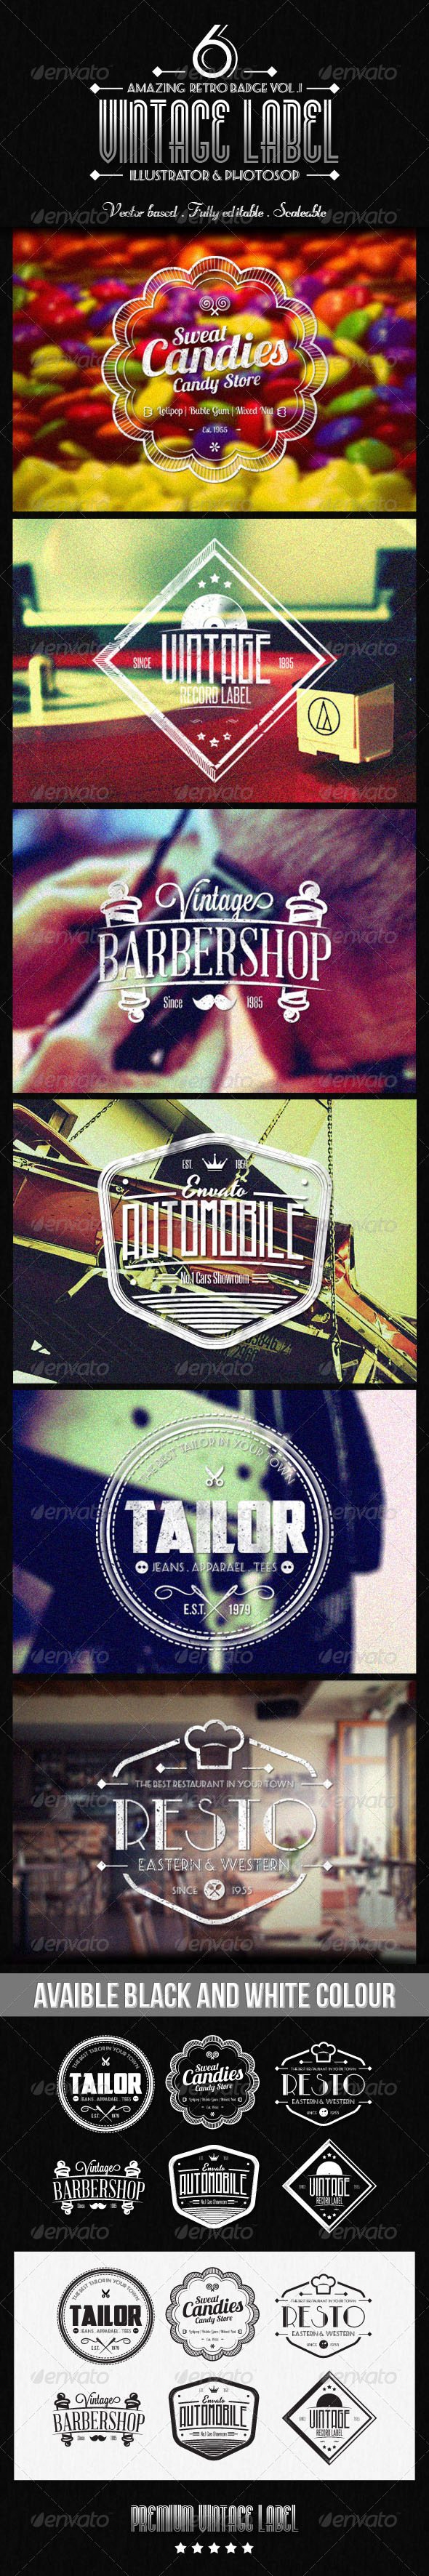 GraphicRiver Vintage Label vol.2 6538744